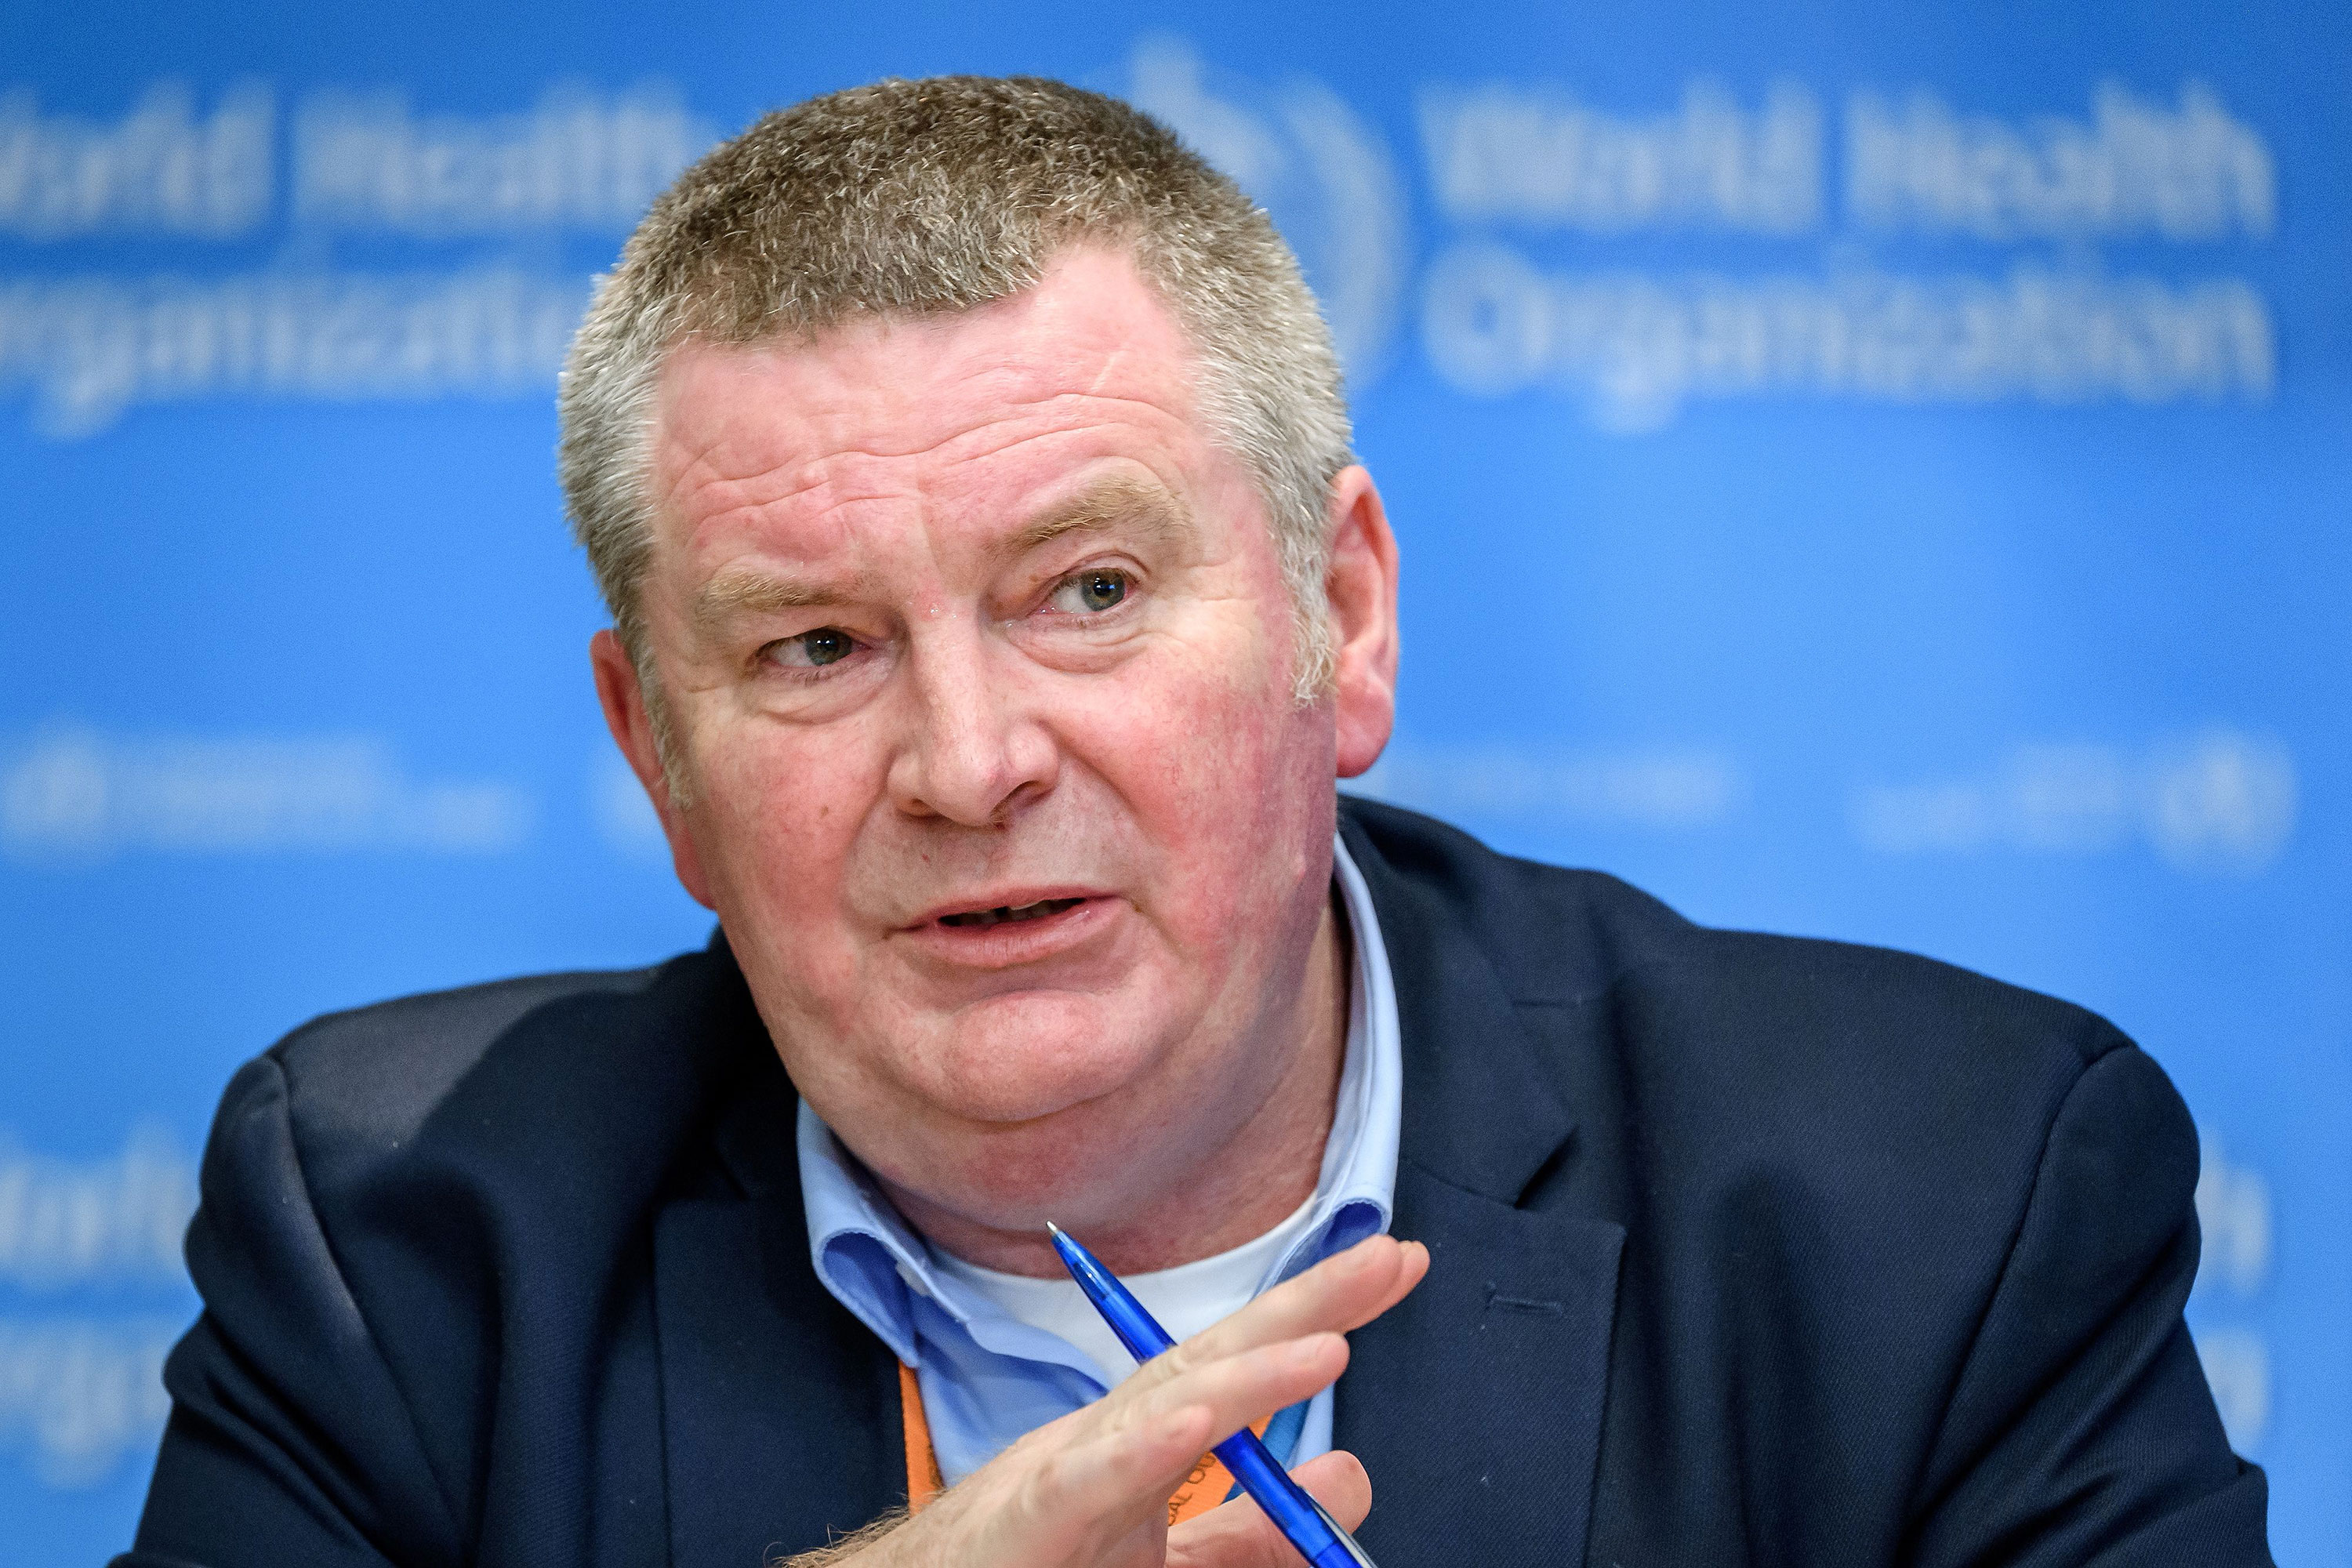 World Health Organization health emergencies programme executive director Dr. Mike Ryan speaks at a coronavirus press briefing at the WHO headquarters in Geneva on March 11.